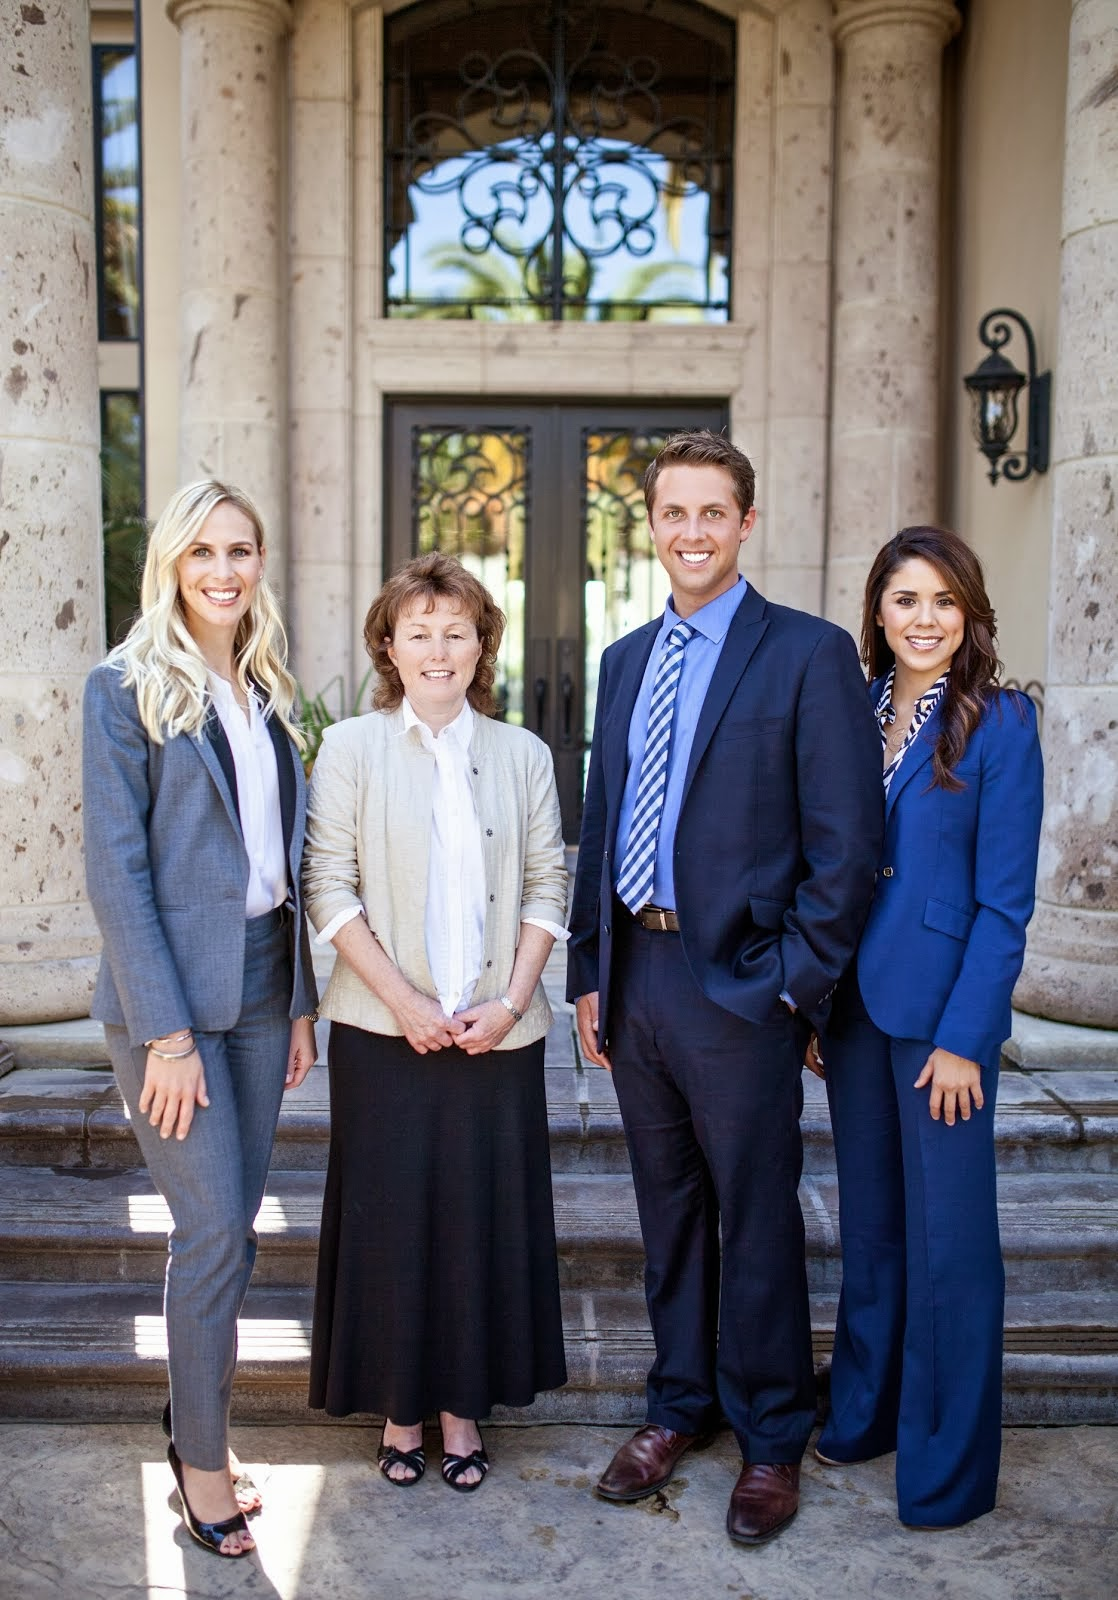 The JB Real Estate Team